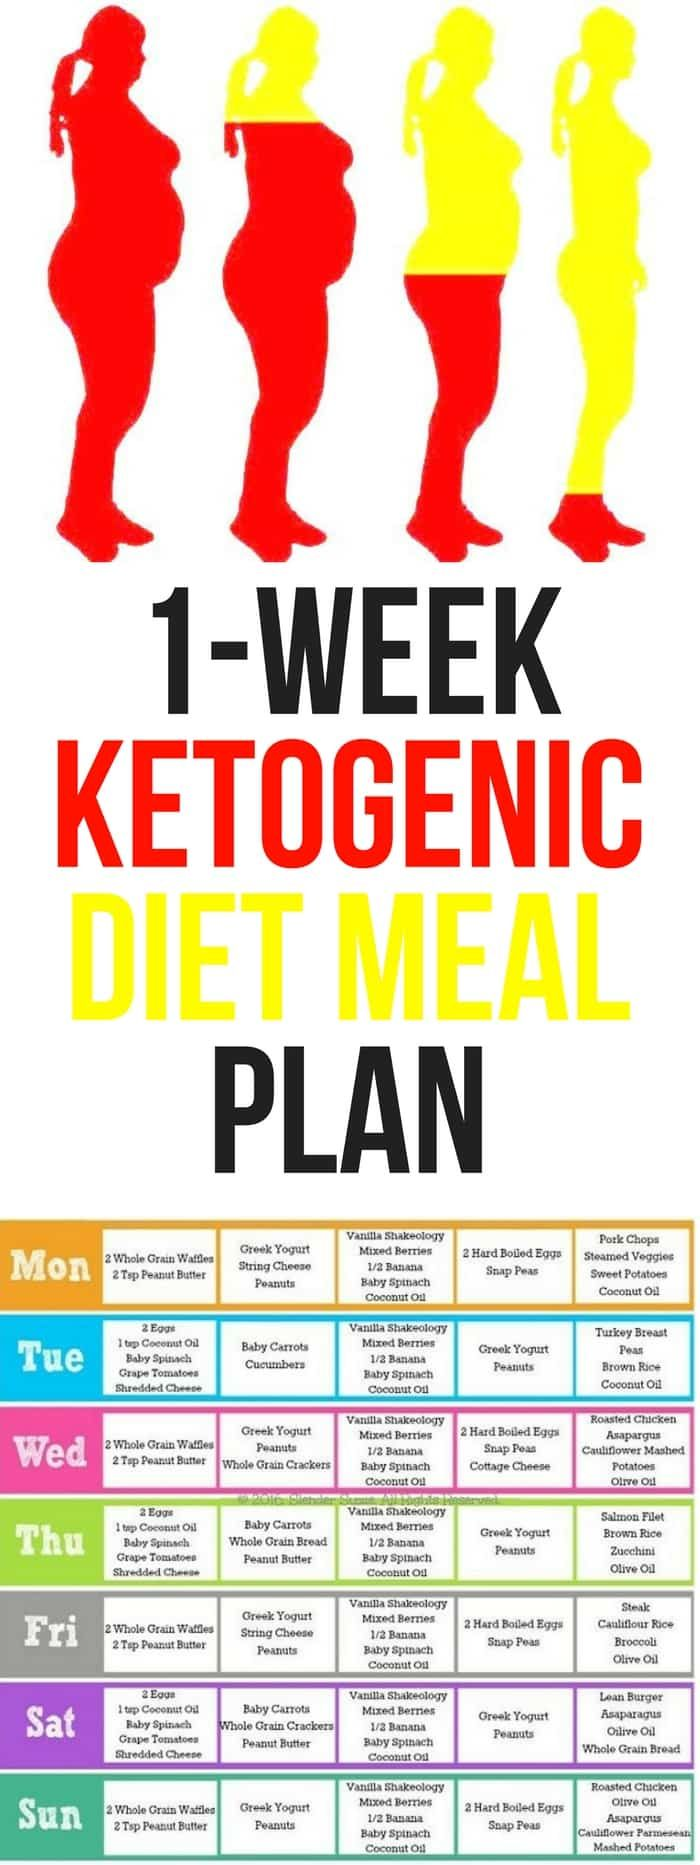 atkins diet changed to the keto diet